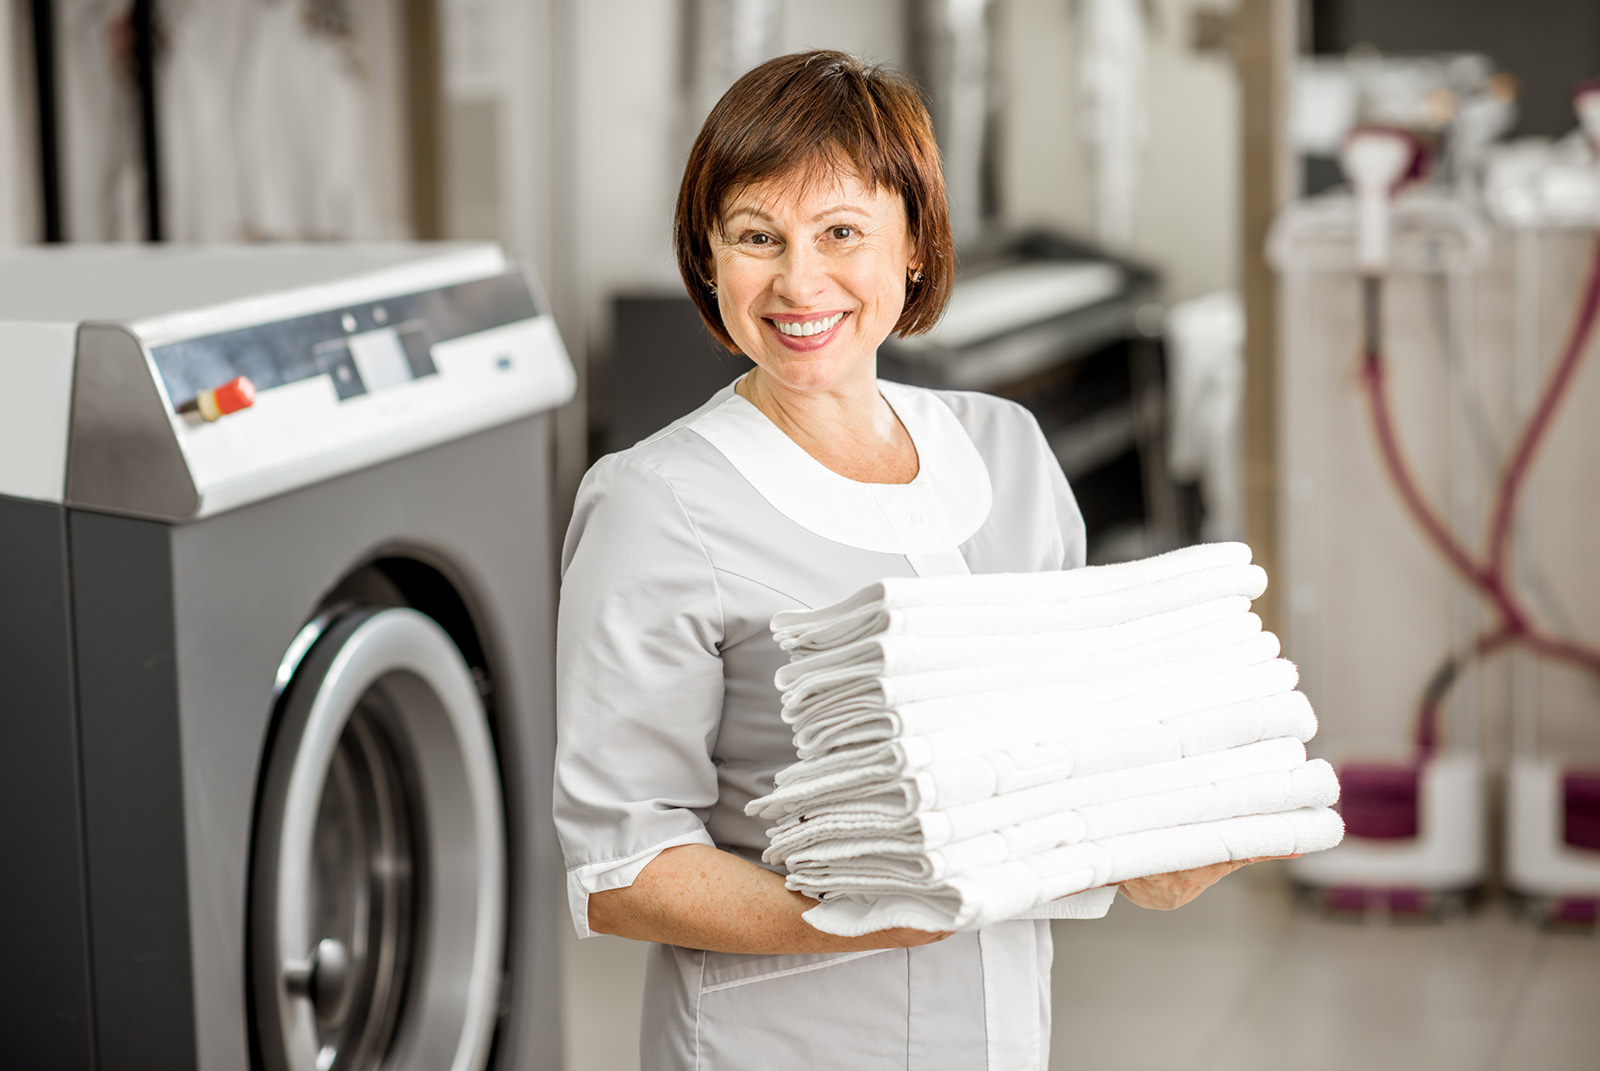 Full Commercial Laundry Service